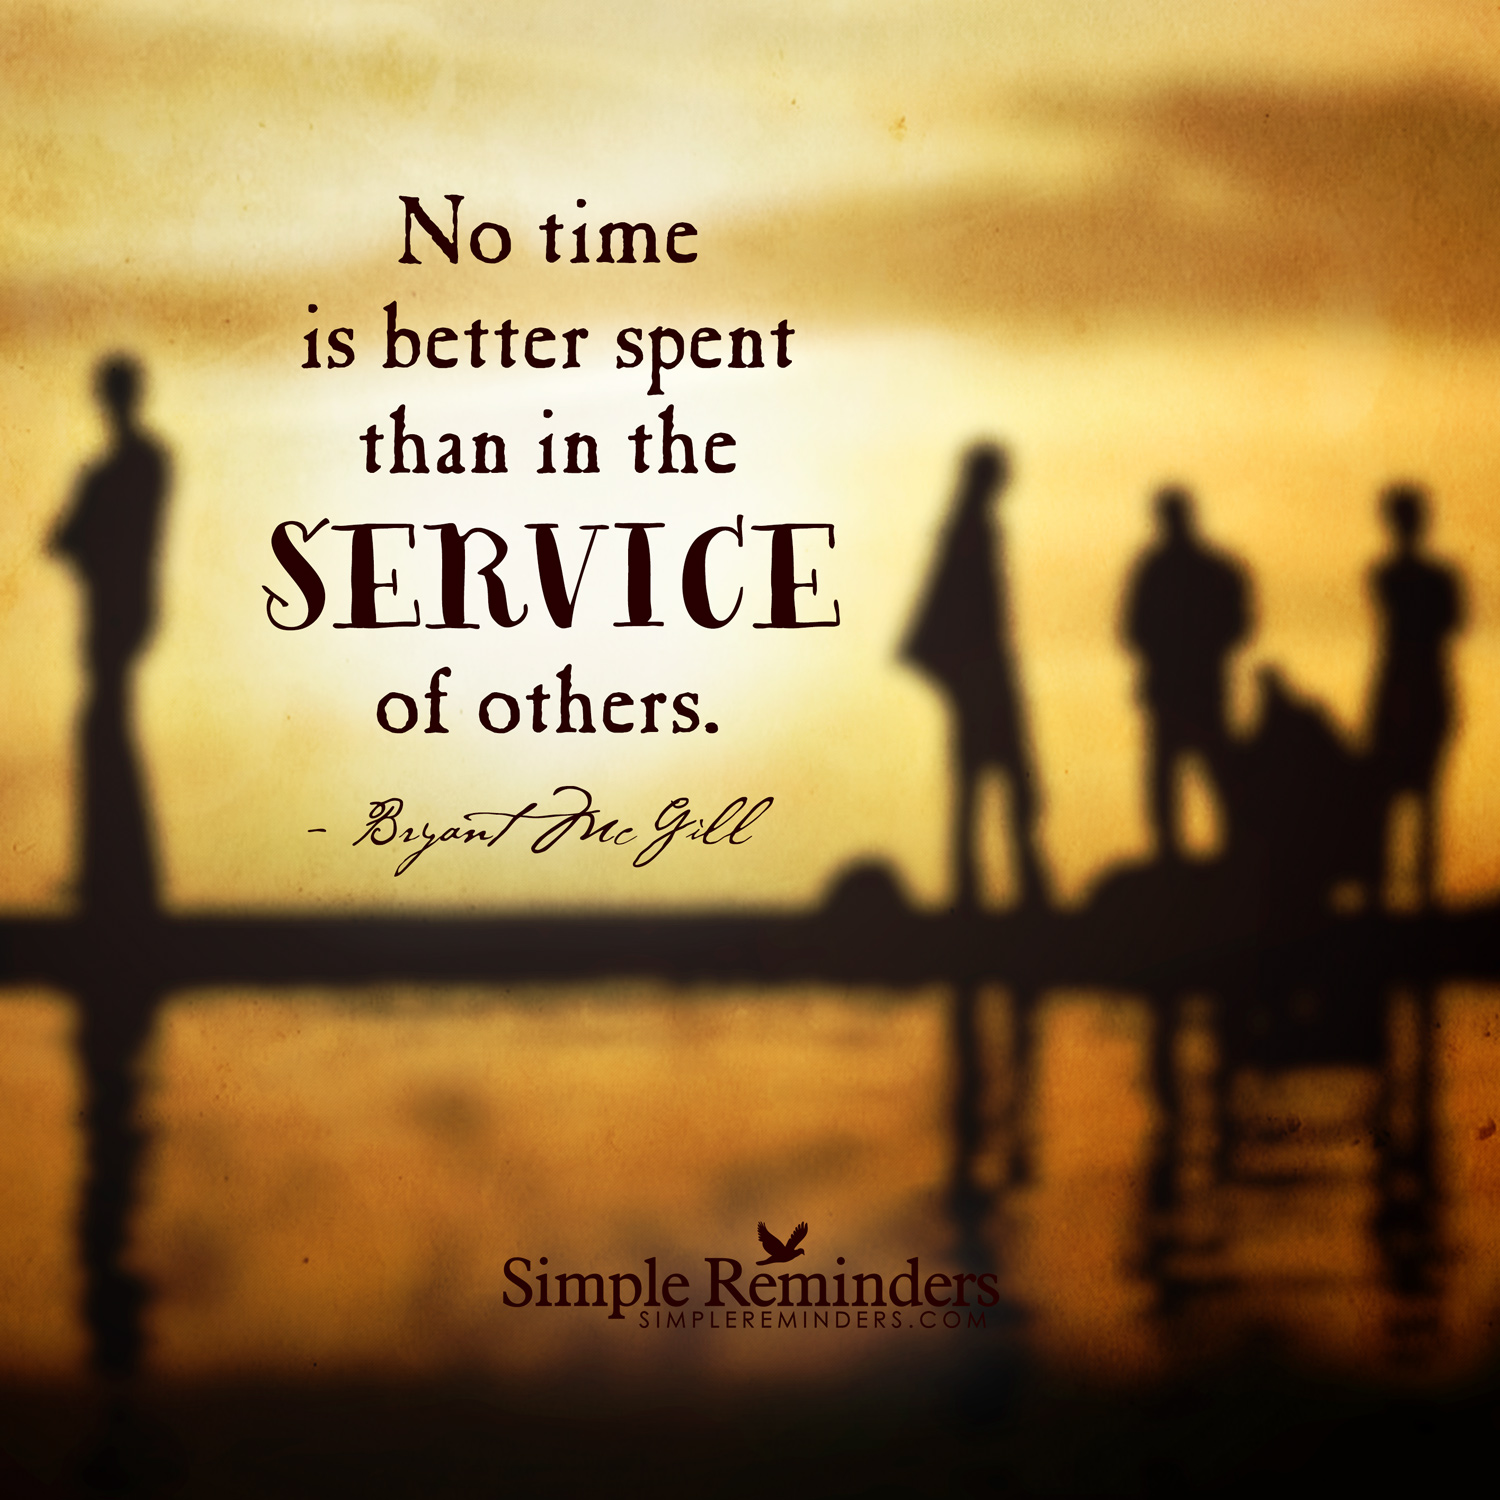 bryant-mcgill-time-service-others-4f8h